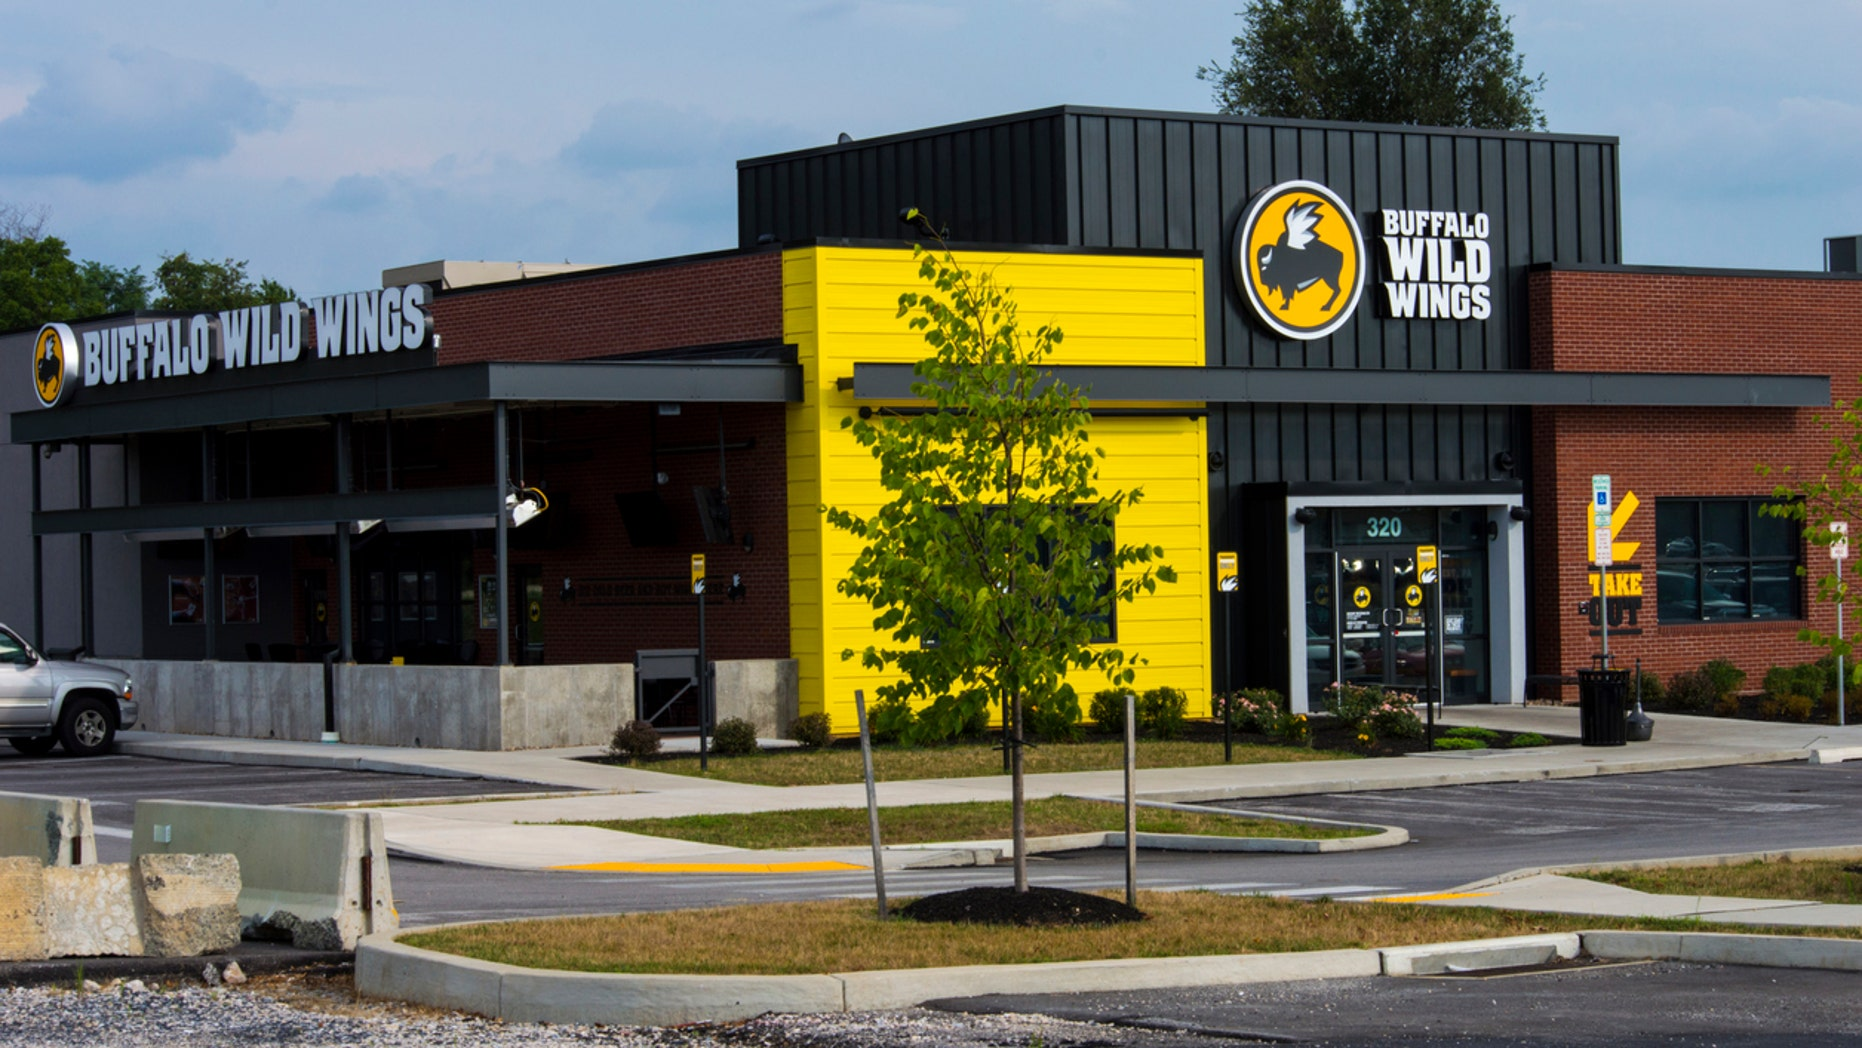 The Buffalo Wild Wings manager was fired after the video surfaced.